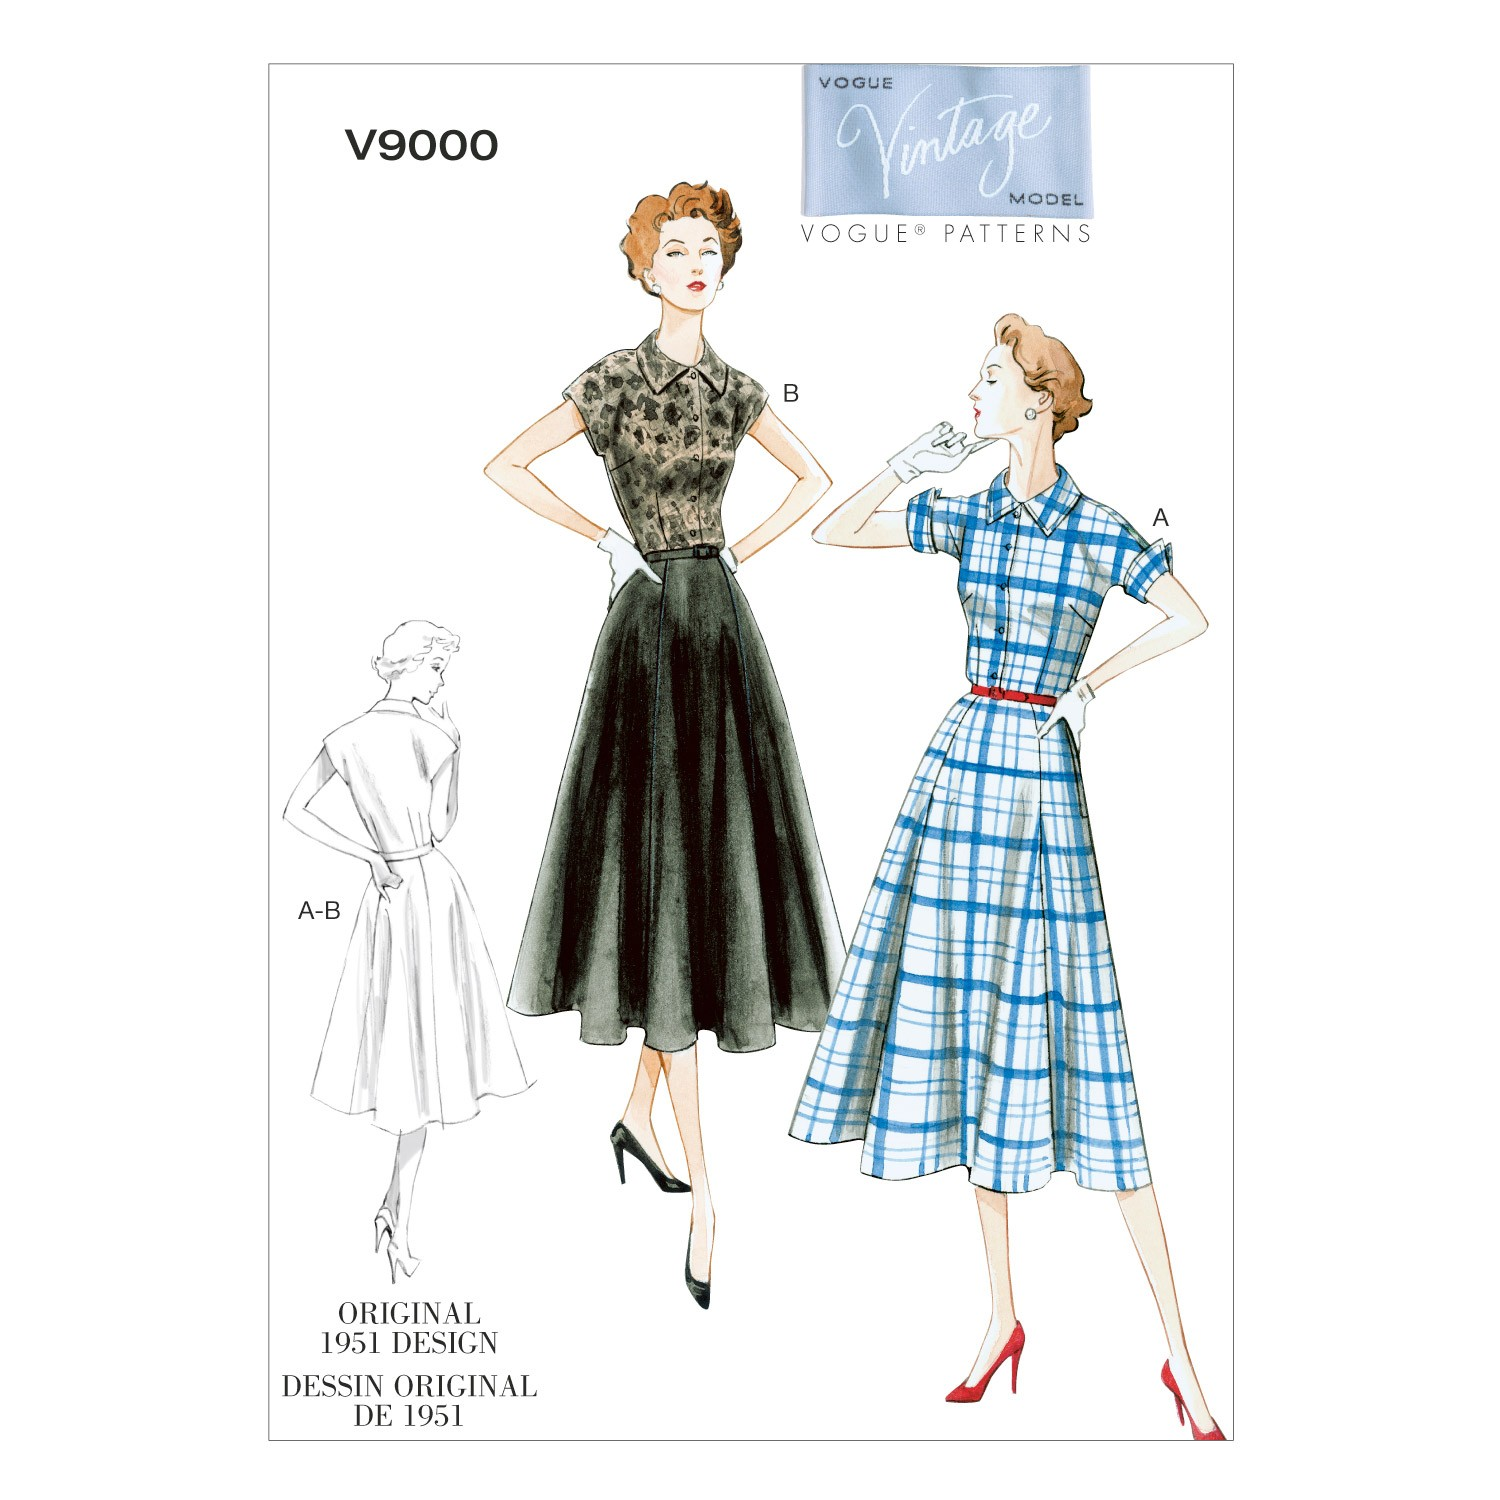 Vogue Sewing Pattern V9000 Women's Vintage Dress And Belt